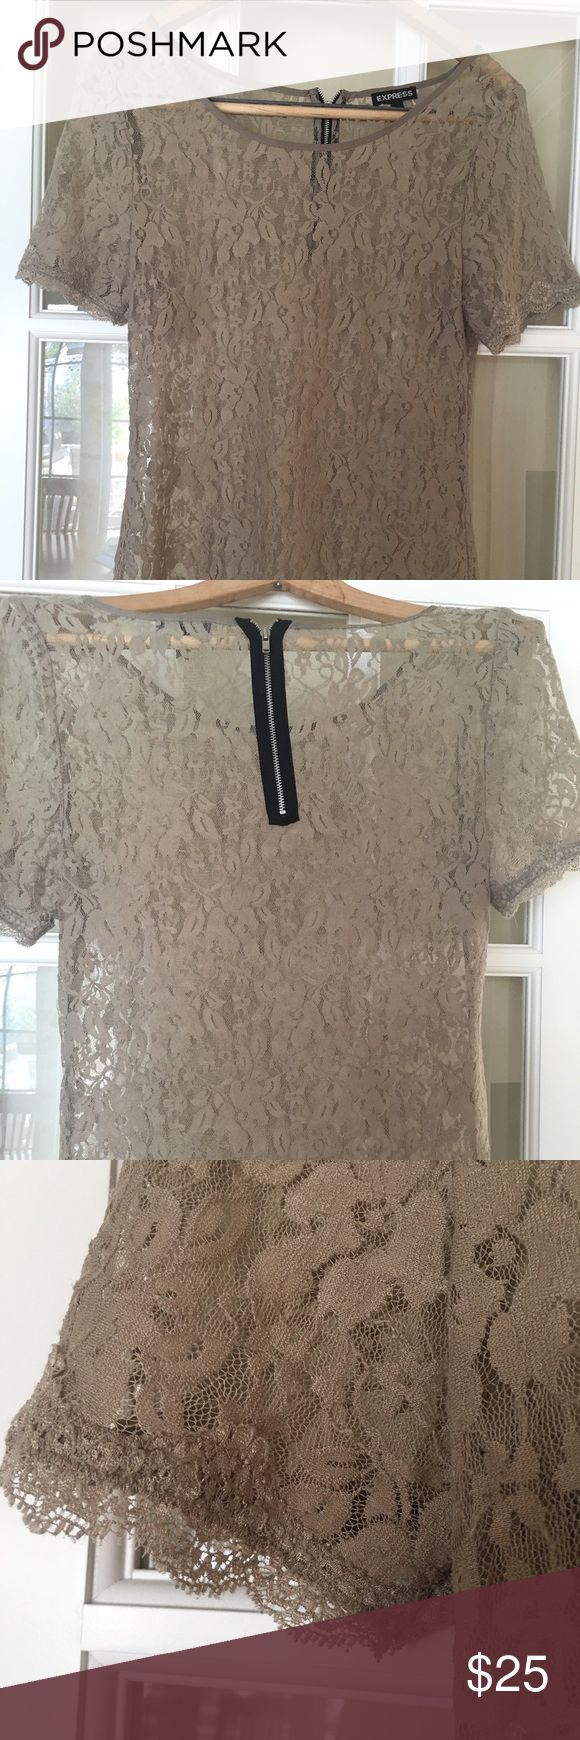 Express Lace see through blouse Beautiful still in Good Condition only used it a handful of times. It's a nude color blouse its medium to long length. It's a size medium but fits a medium to large. The material is made out of 85% nylon, 15% spandex. Zipper in the back. If you have any questions please feel free to ask 😘💕💕💕 Express Tops Blouses